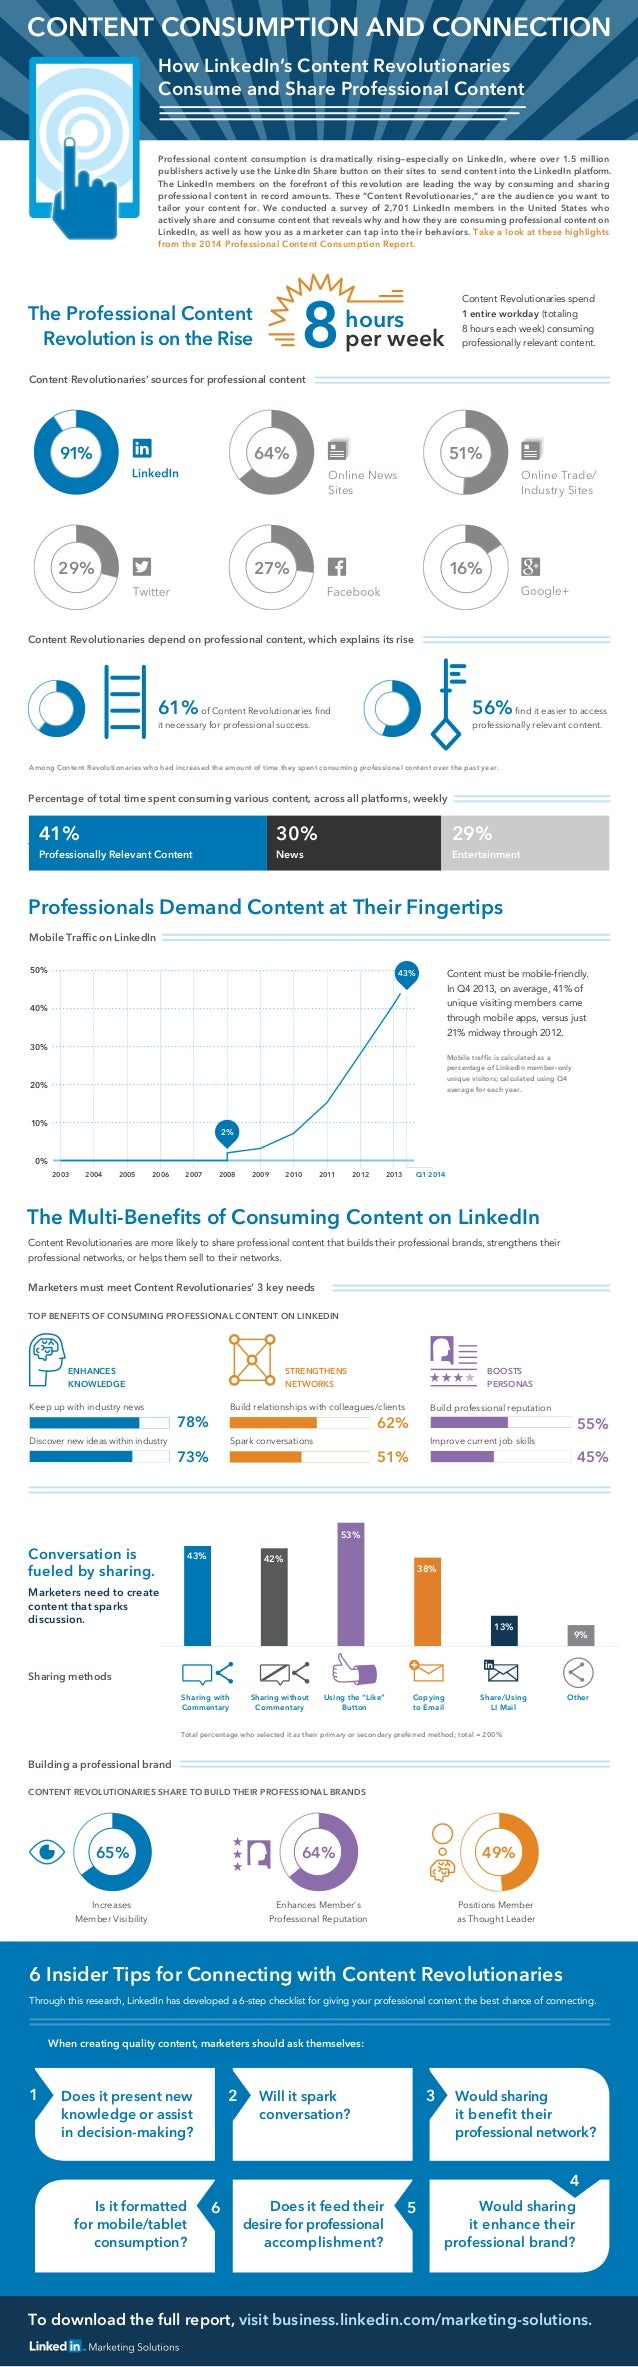 How LinkedIn's Content Revolutionaries Consume and Share Professional Content [Infographic]